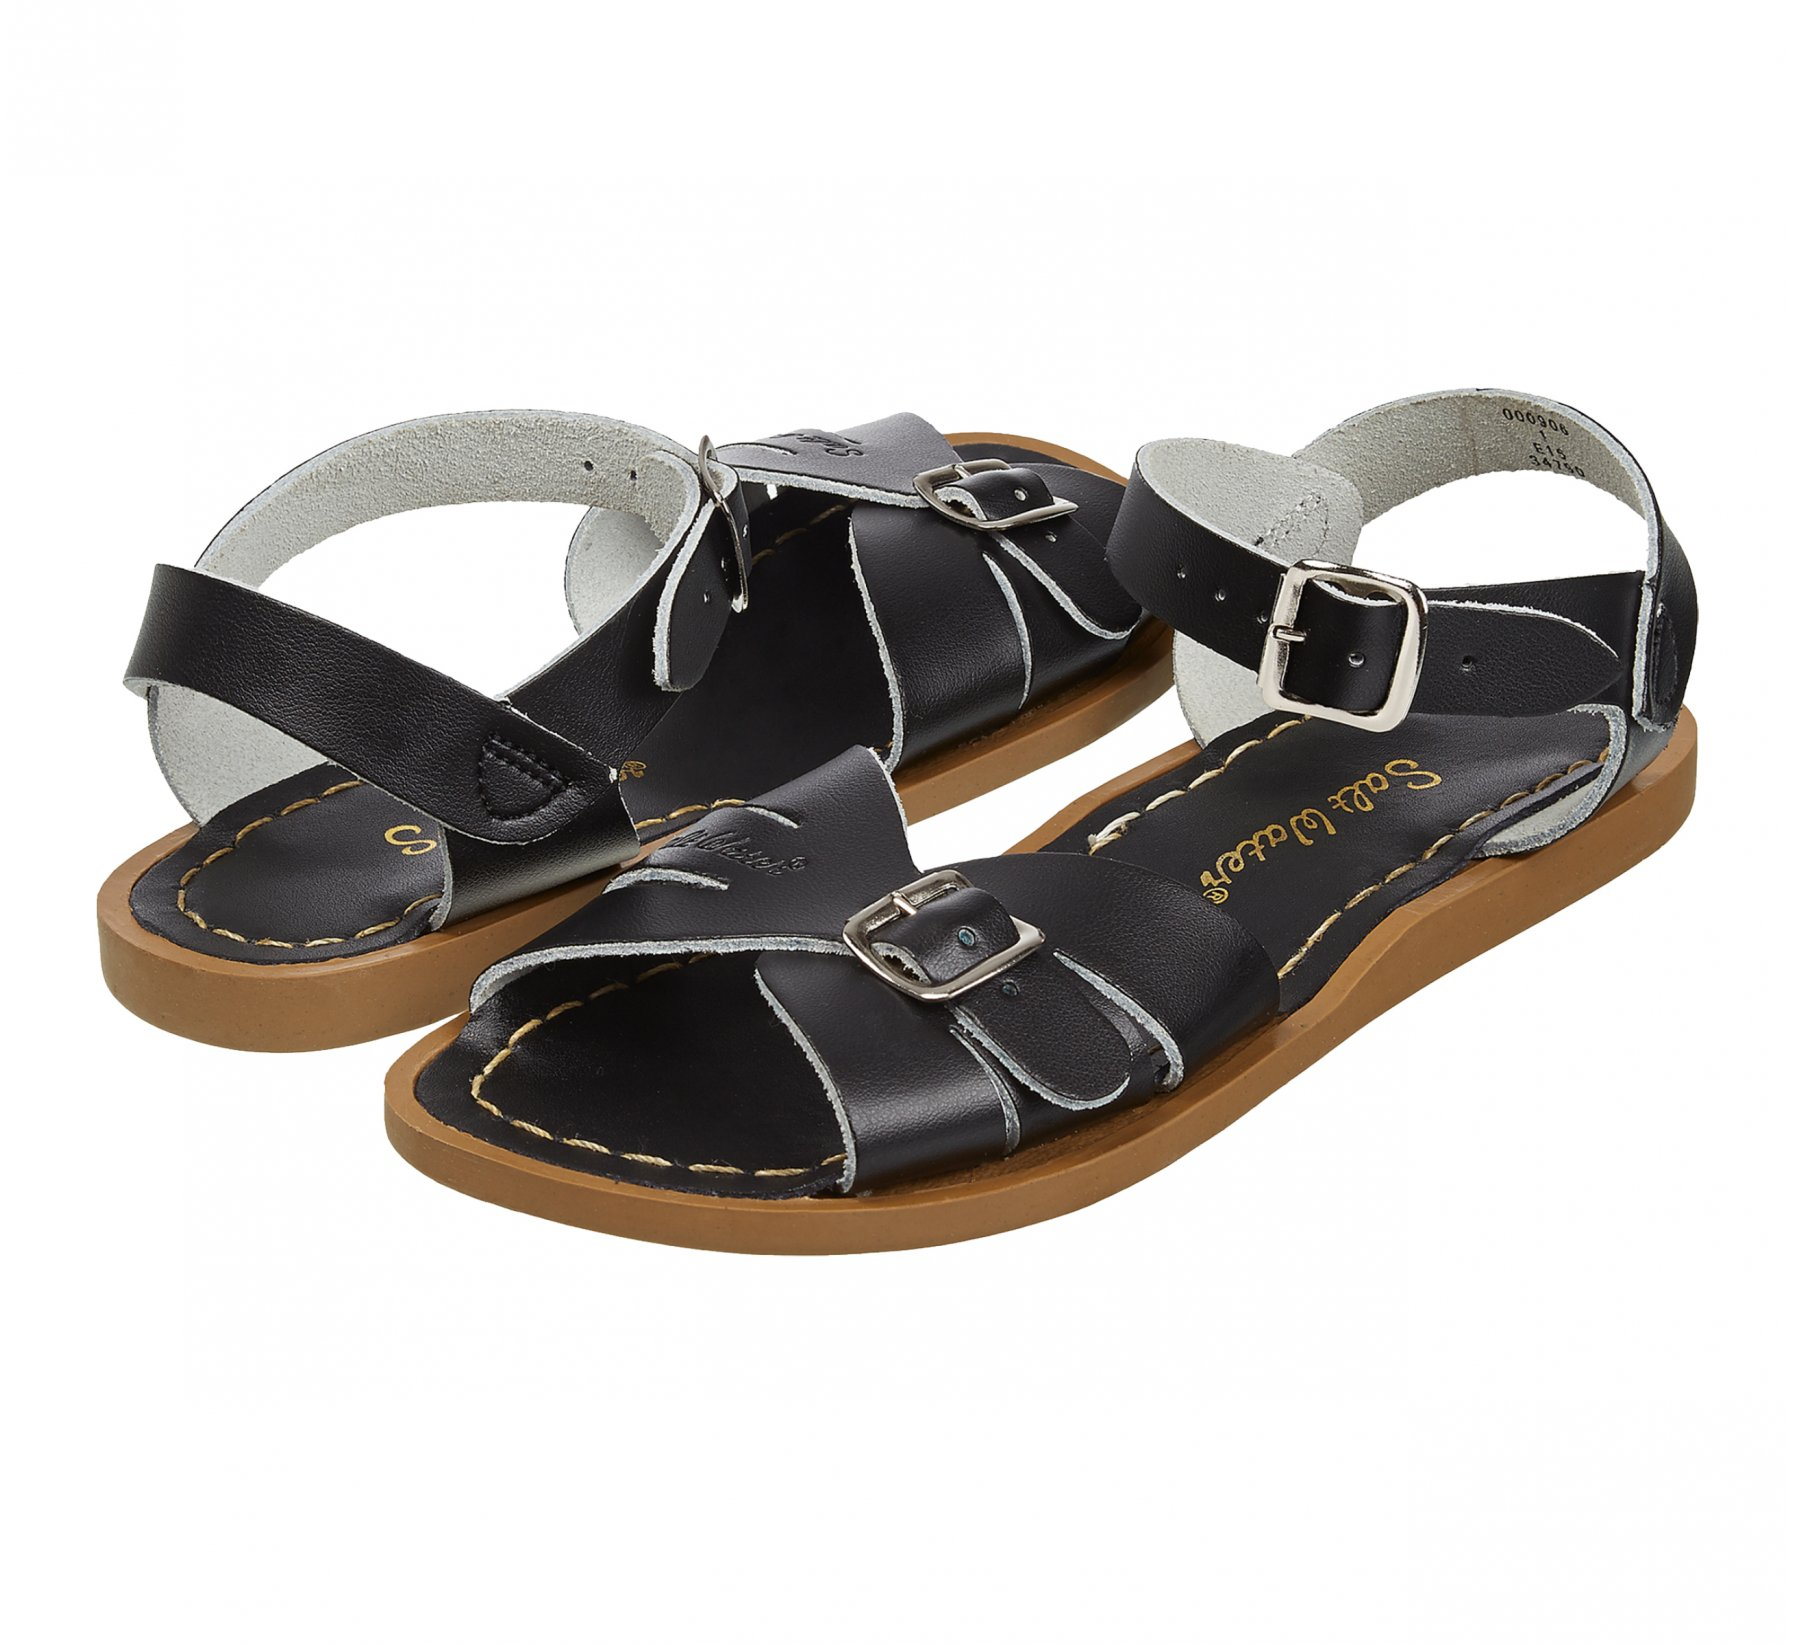 Classic Noir - Salt Water Sandals